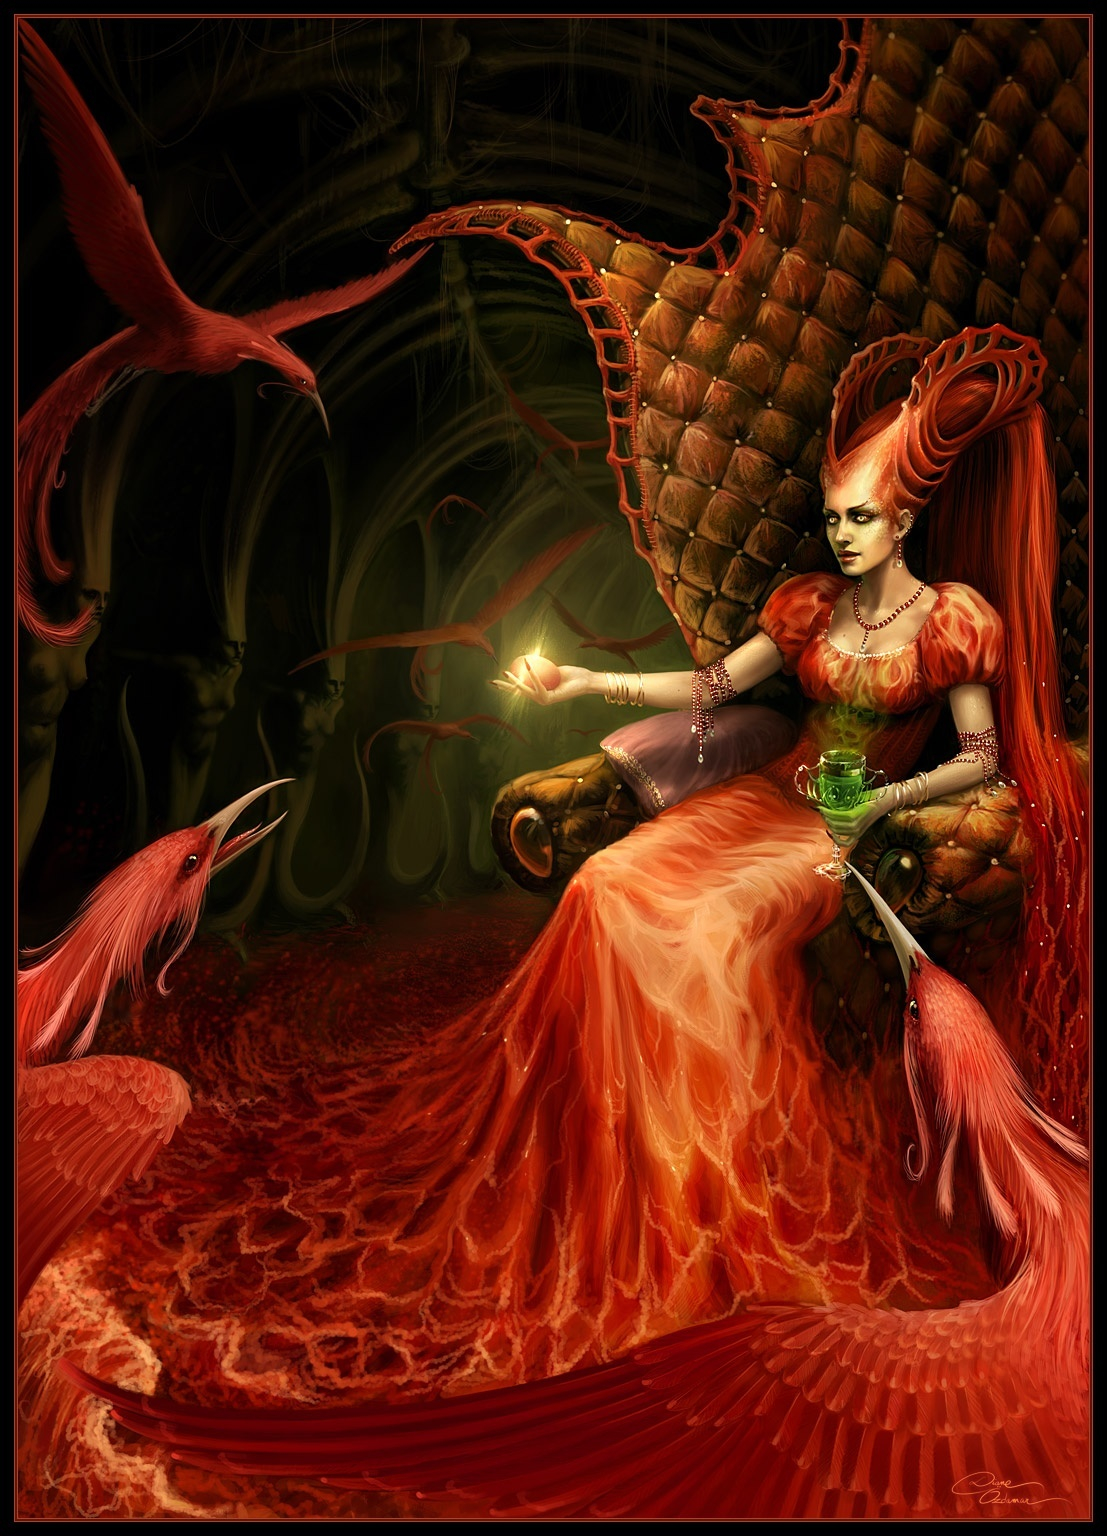 Dianae red queen 1 cf567a2c e4by